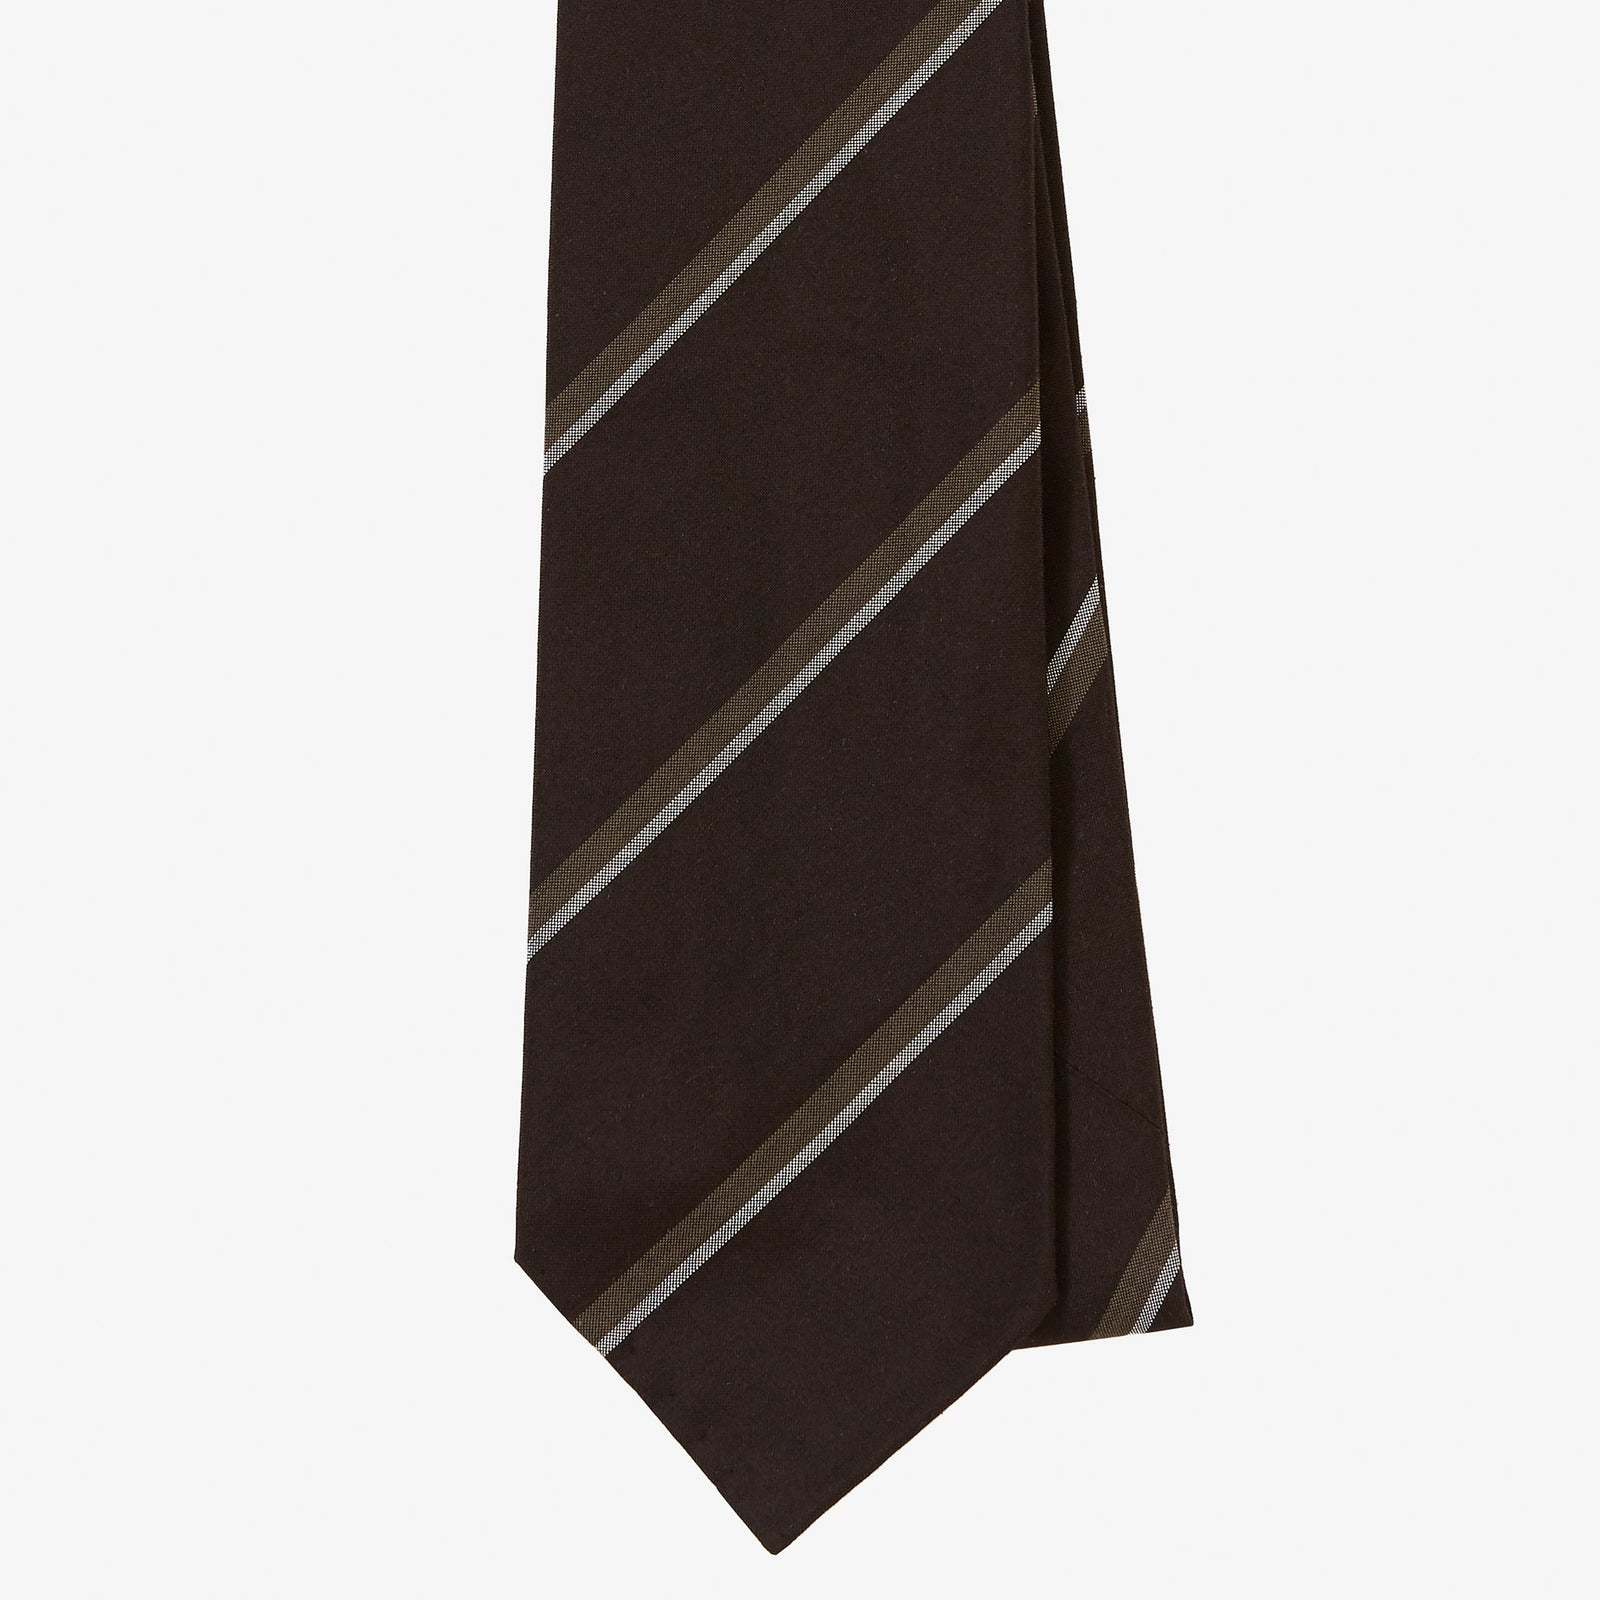 Dry Silk Tie Brown Taupe Grey Double Stripe